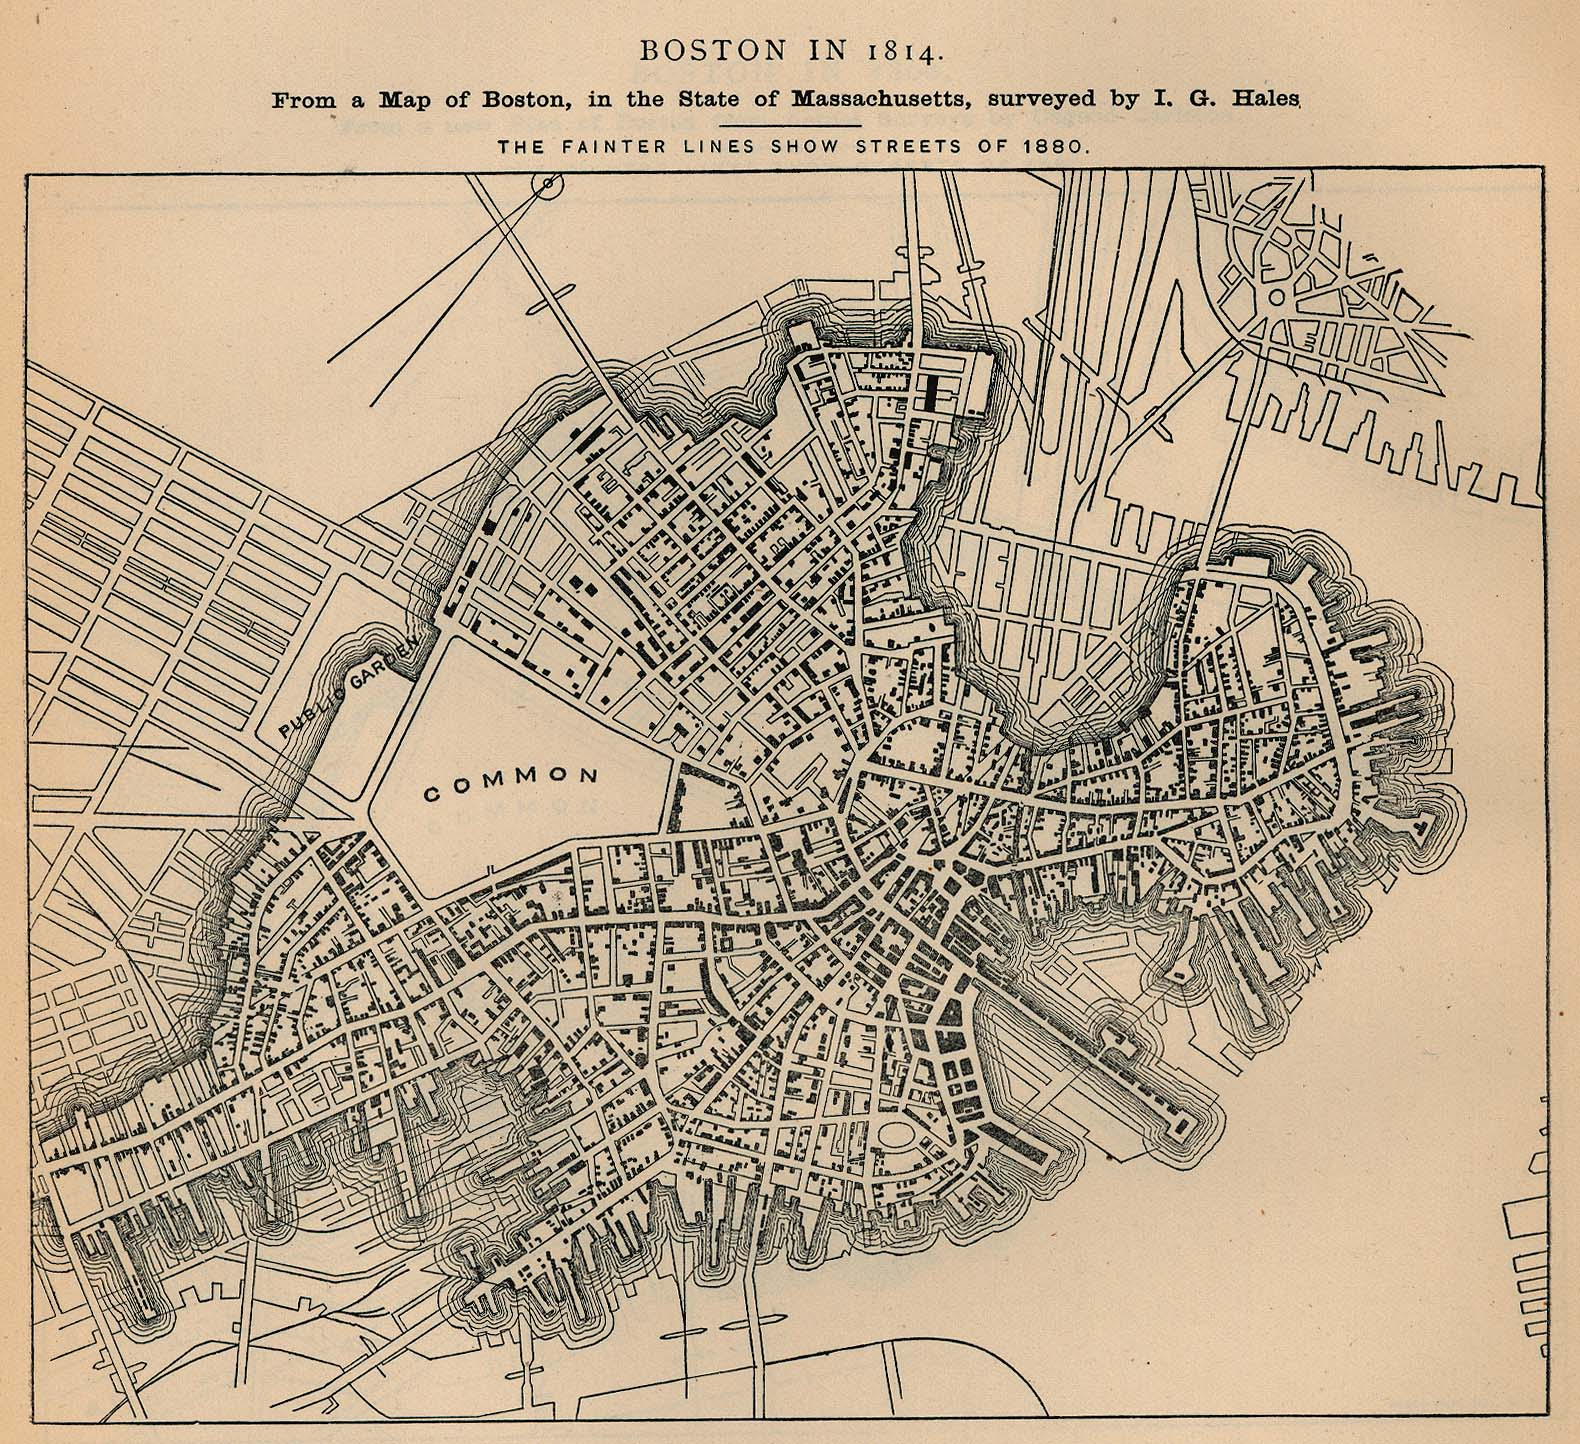 A map of Boston in 1814, with fainter lines for later developments.